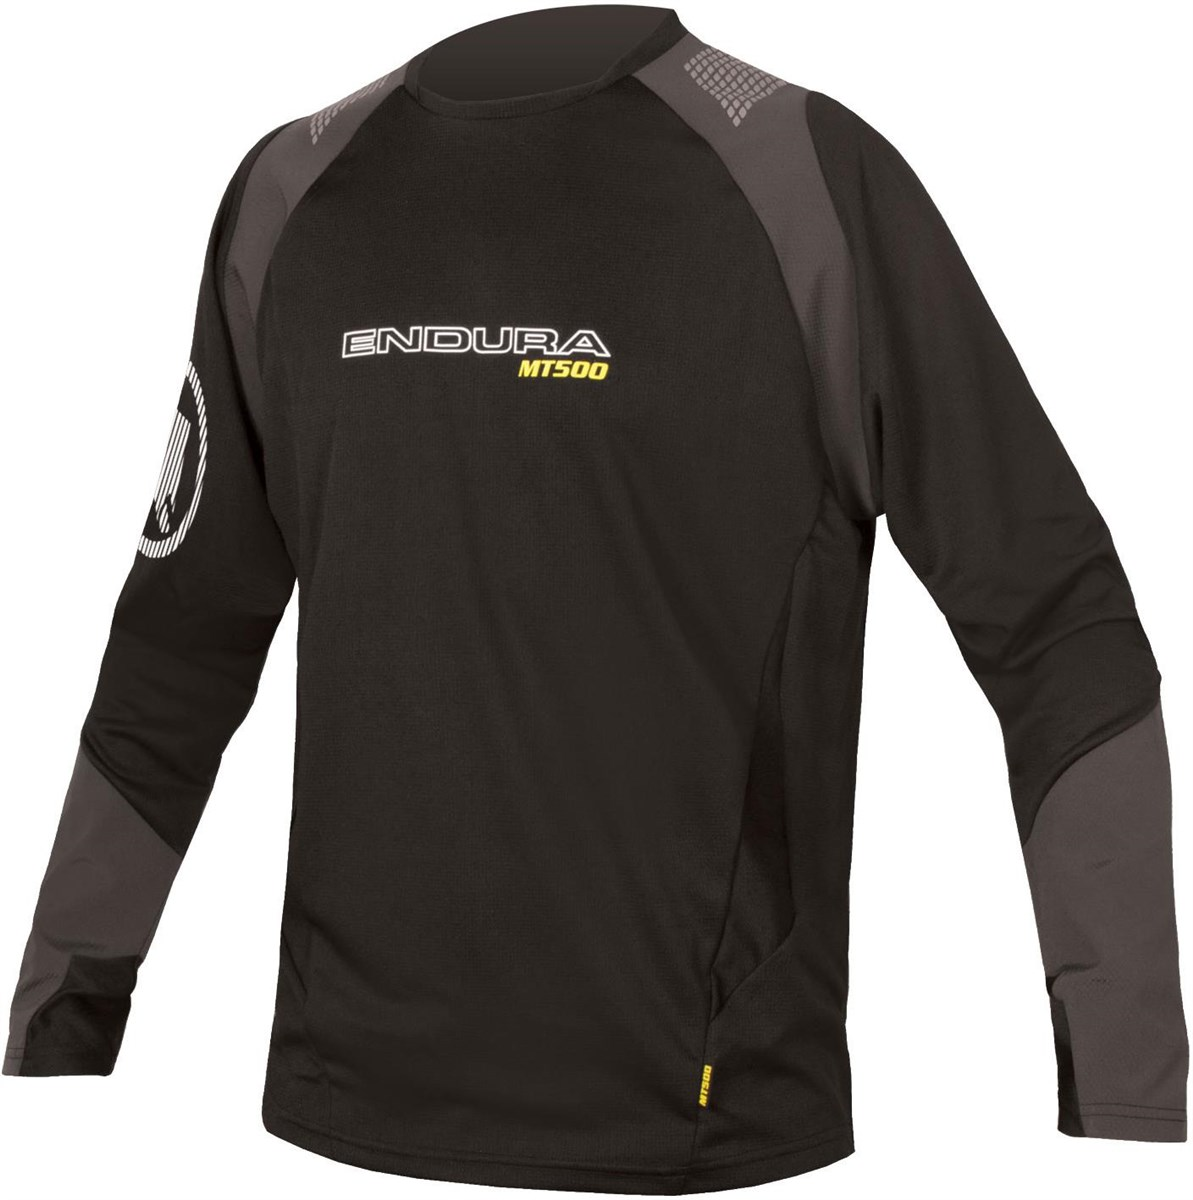 Endura MT500 Burner Long Sleeve Jersey | Jerseys